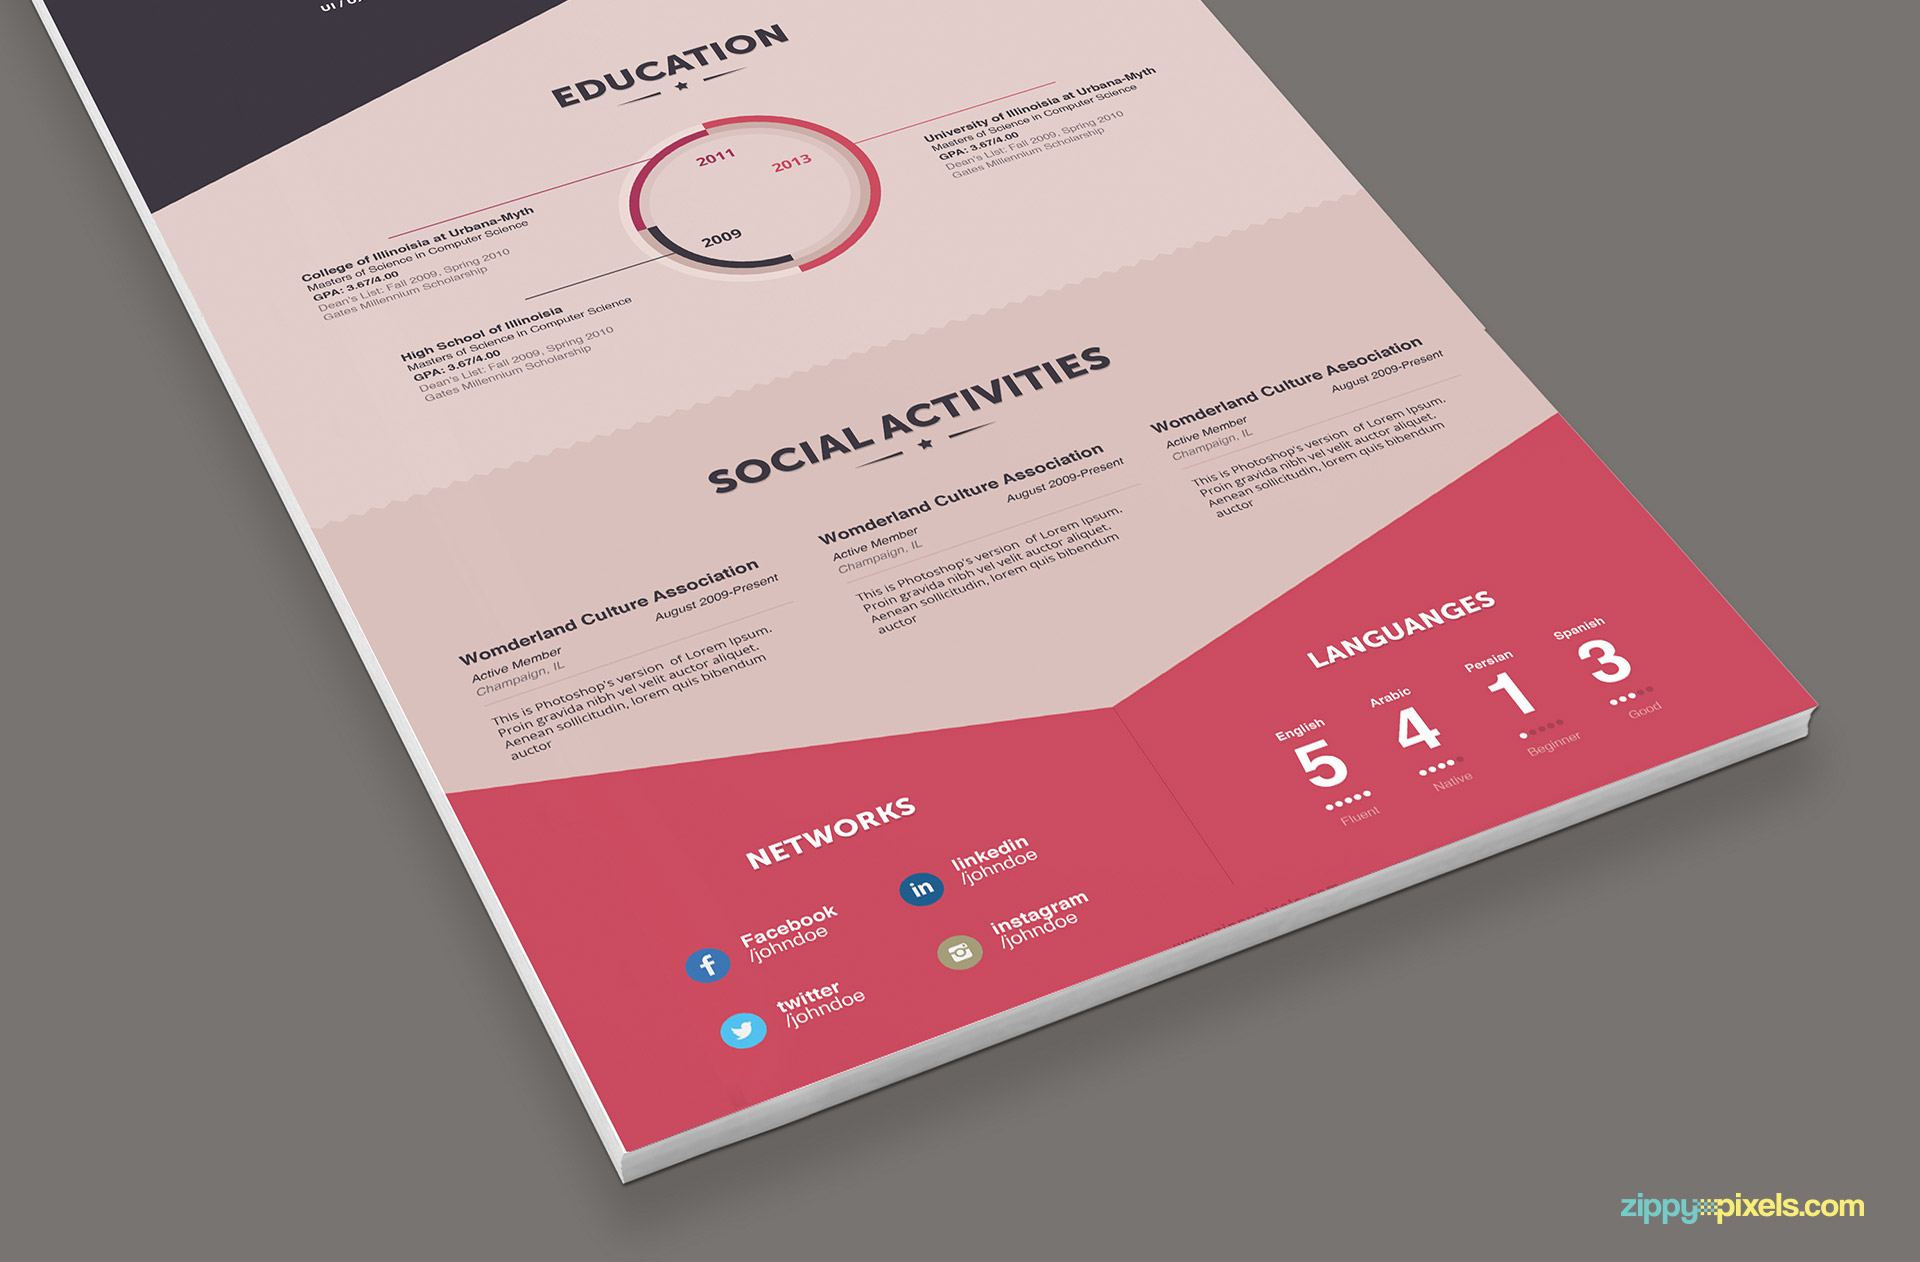 Infographic ideas infographic cover letter template best free infographic ideas infographic cover letter template infographic resume cover letter creative resume photoshop madrichimfo Choice Image